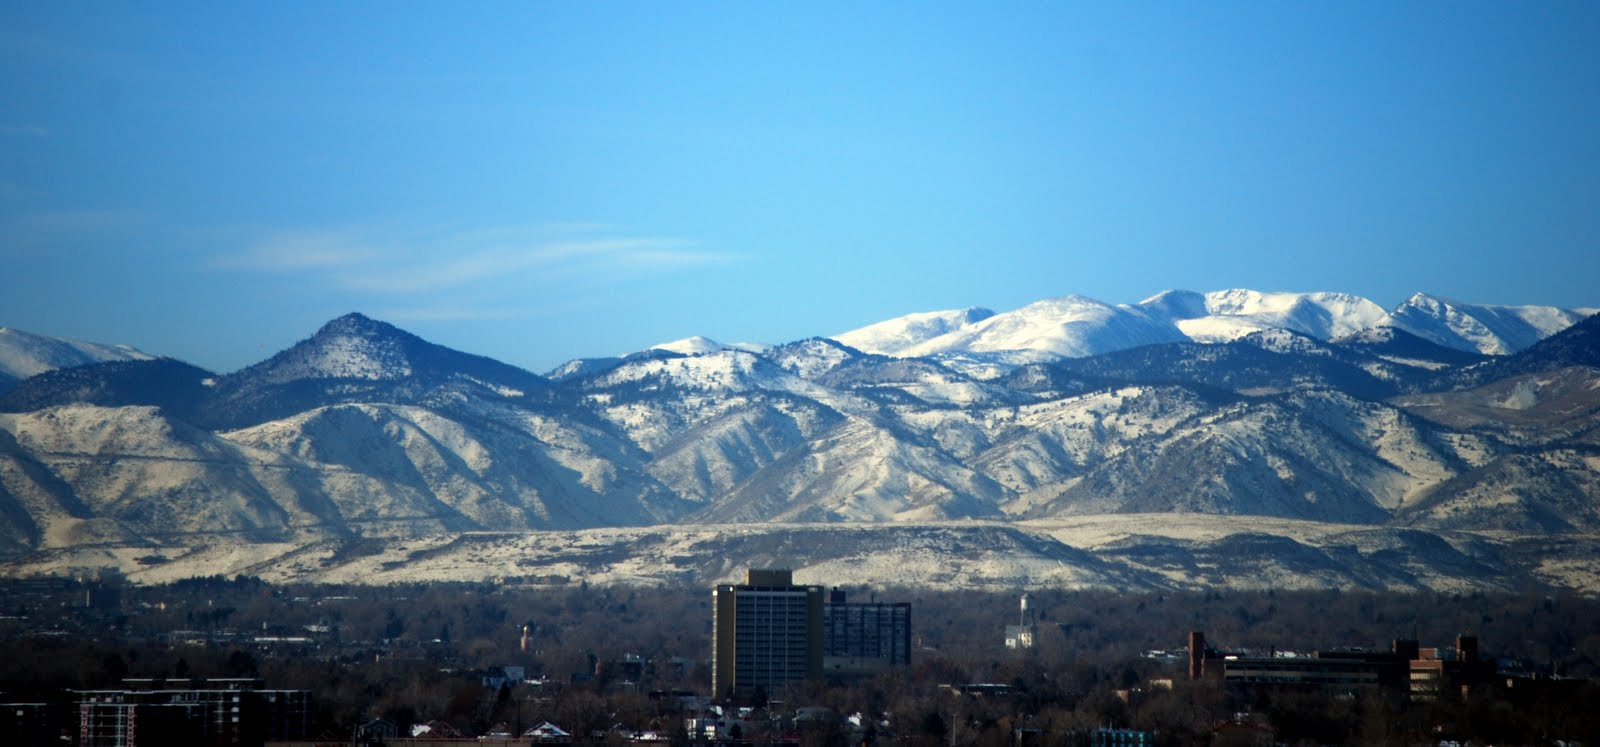 couple of views of the beautiful Rocky Mountains in the distance in -3.bp.blogspot.com